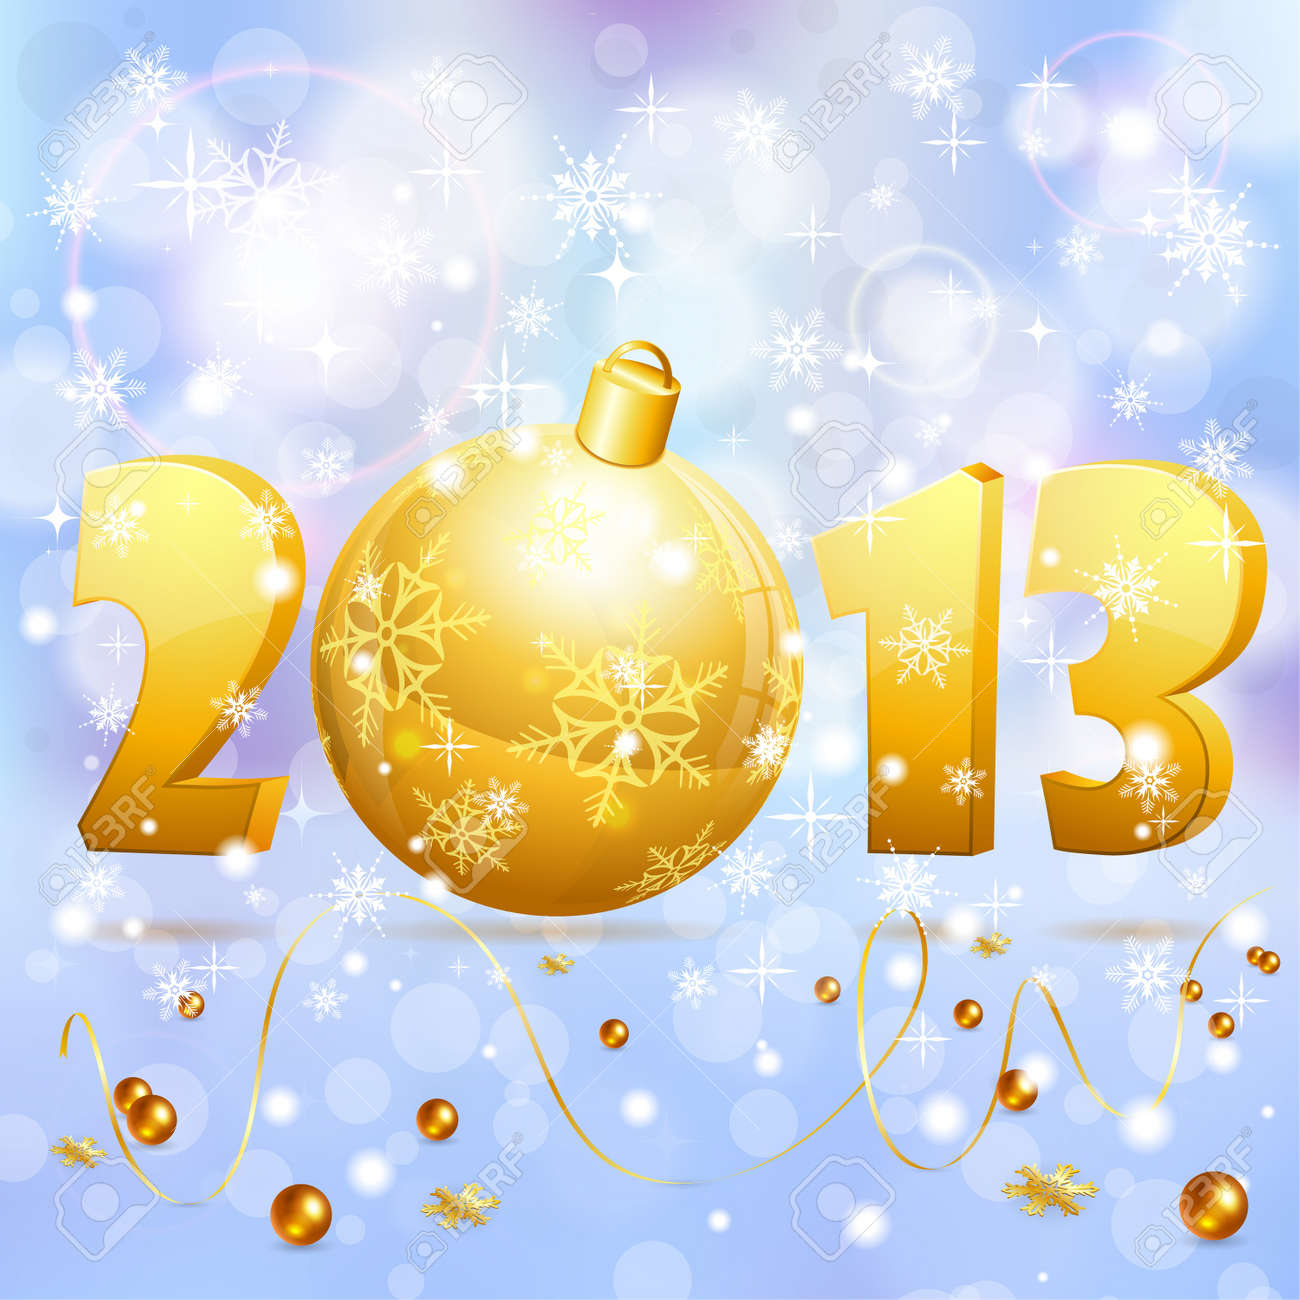 New Year background with stylized 2013 with Bauble, element for design, vector illustration Stock Vector - 17470801